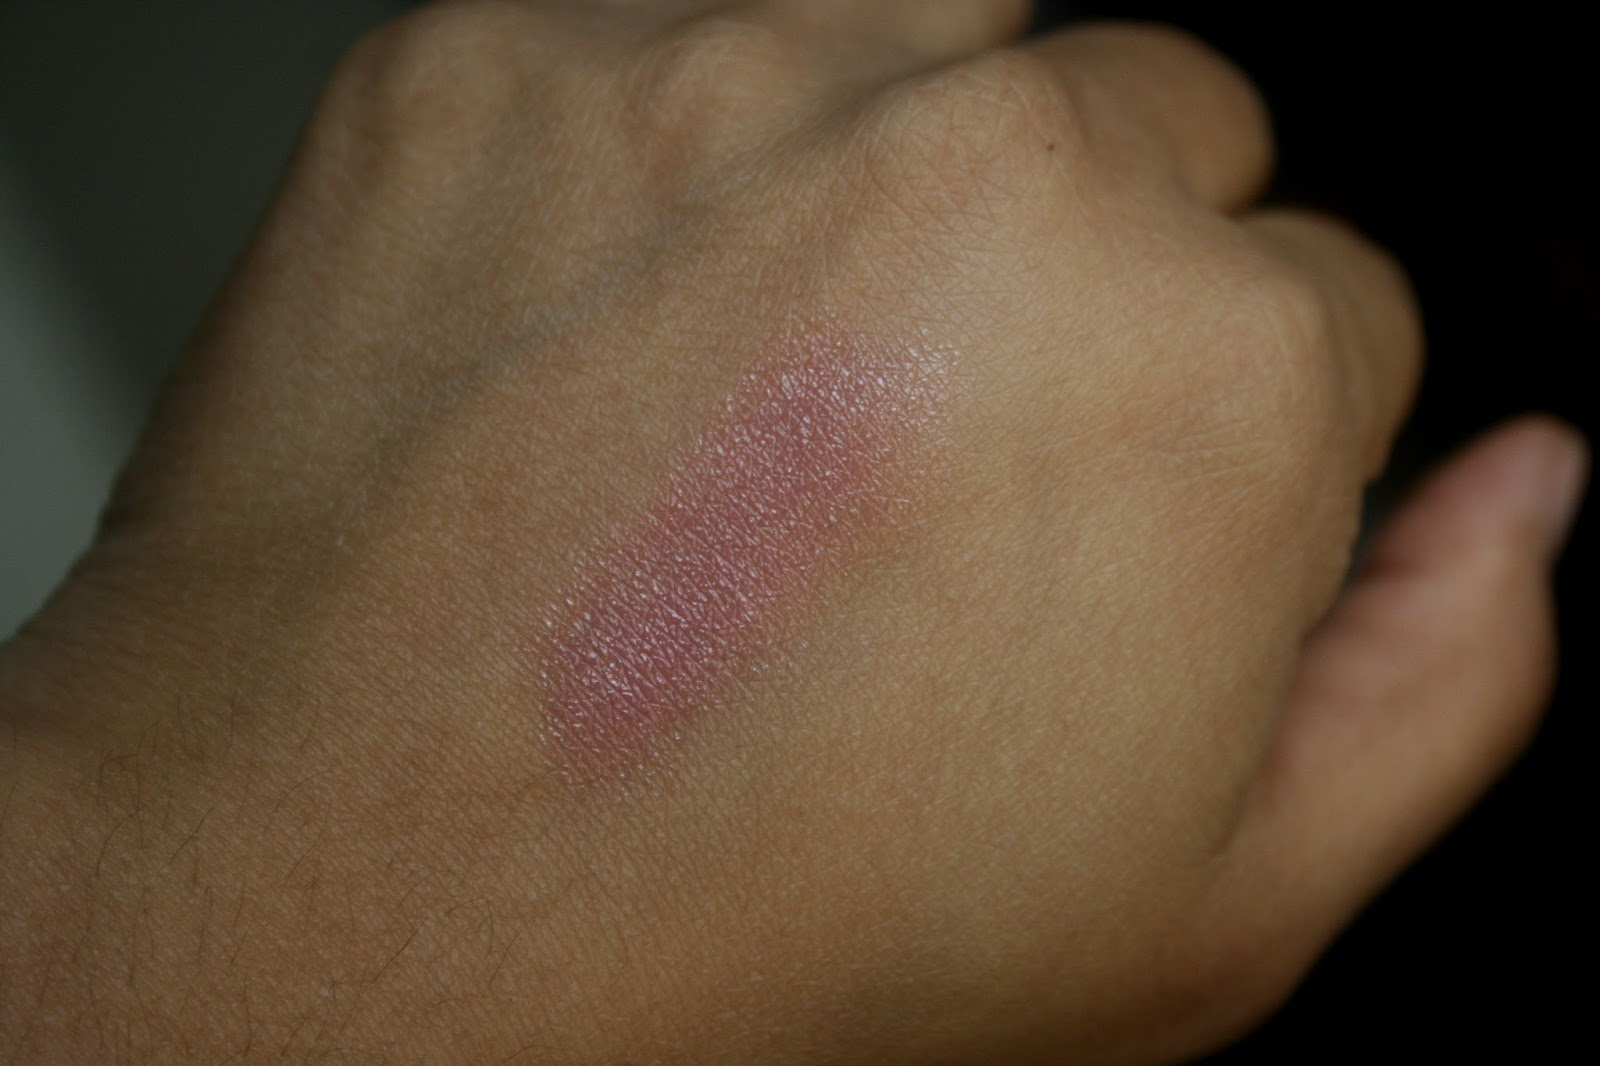 Burberry Pink Heather Lip Mist Swatch